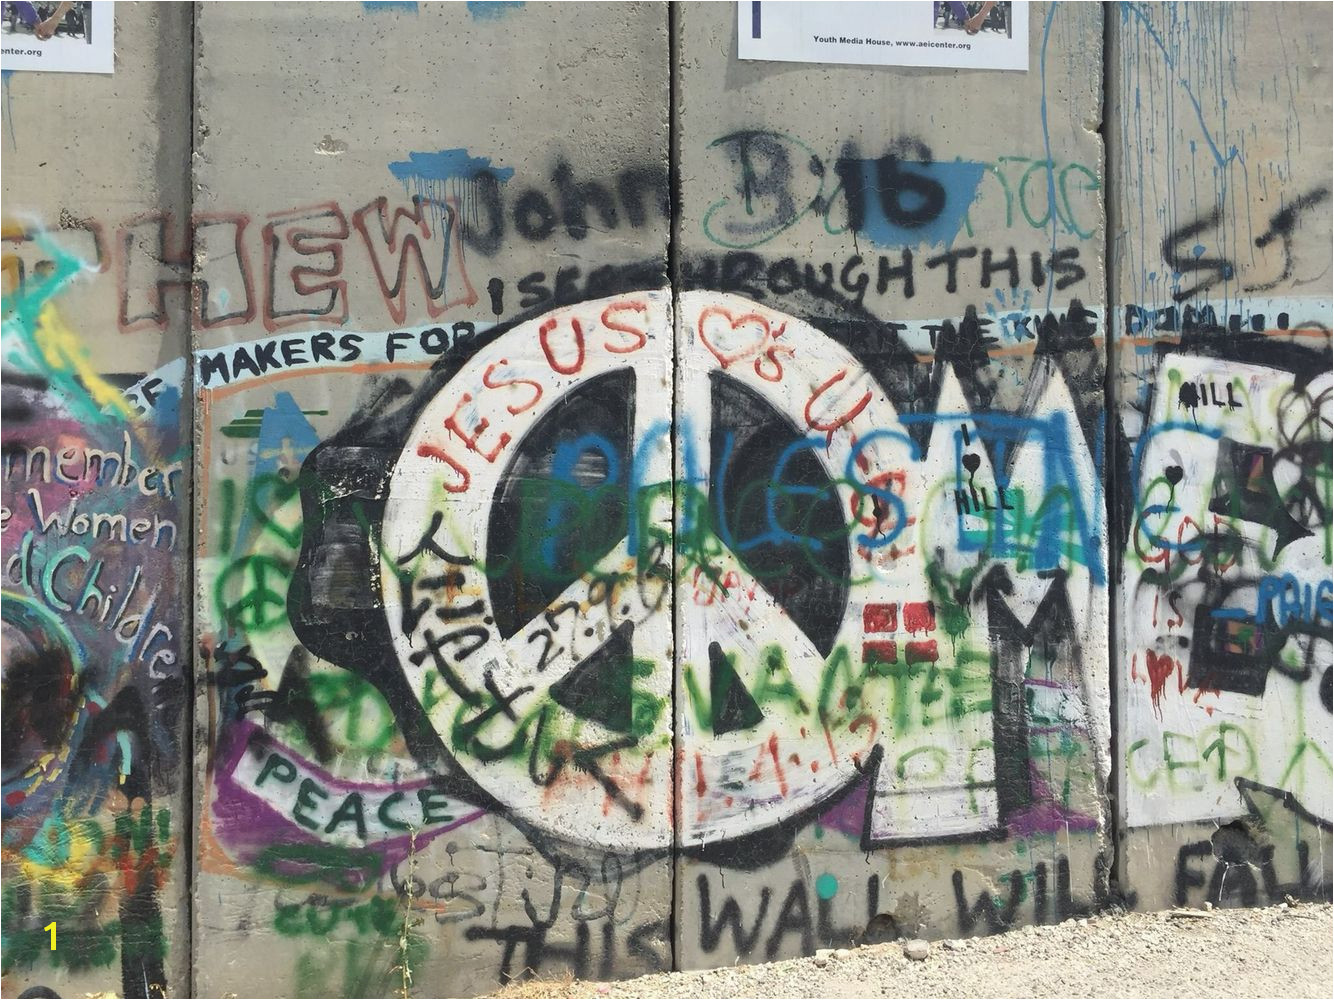 This wall will fal FreePalestine